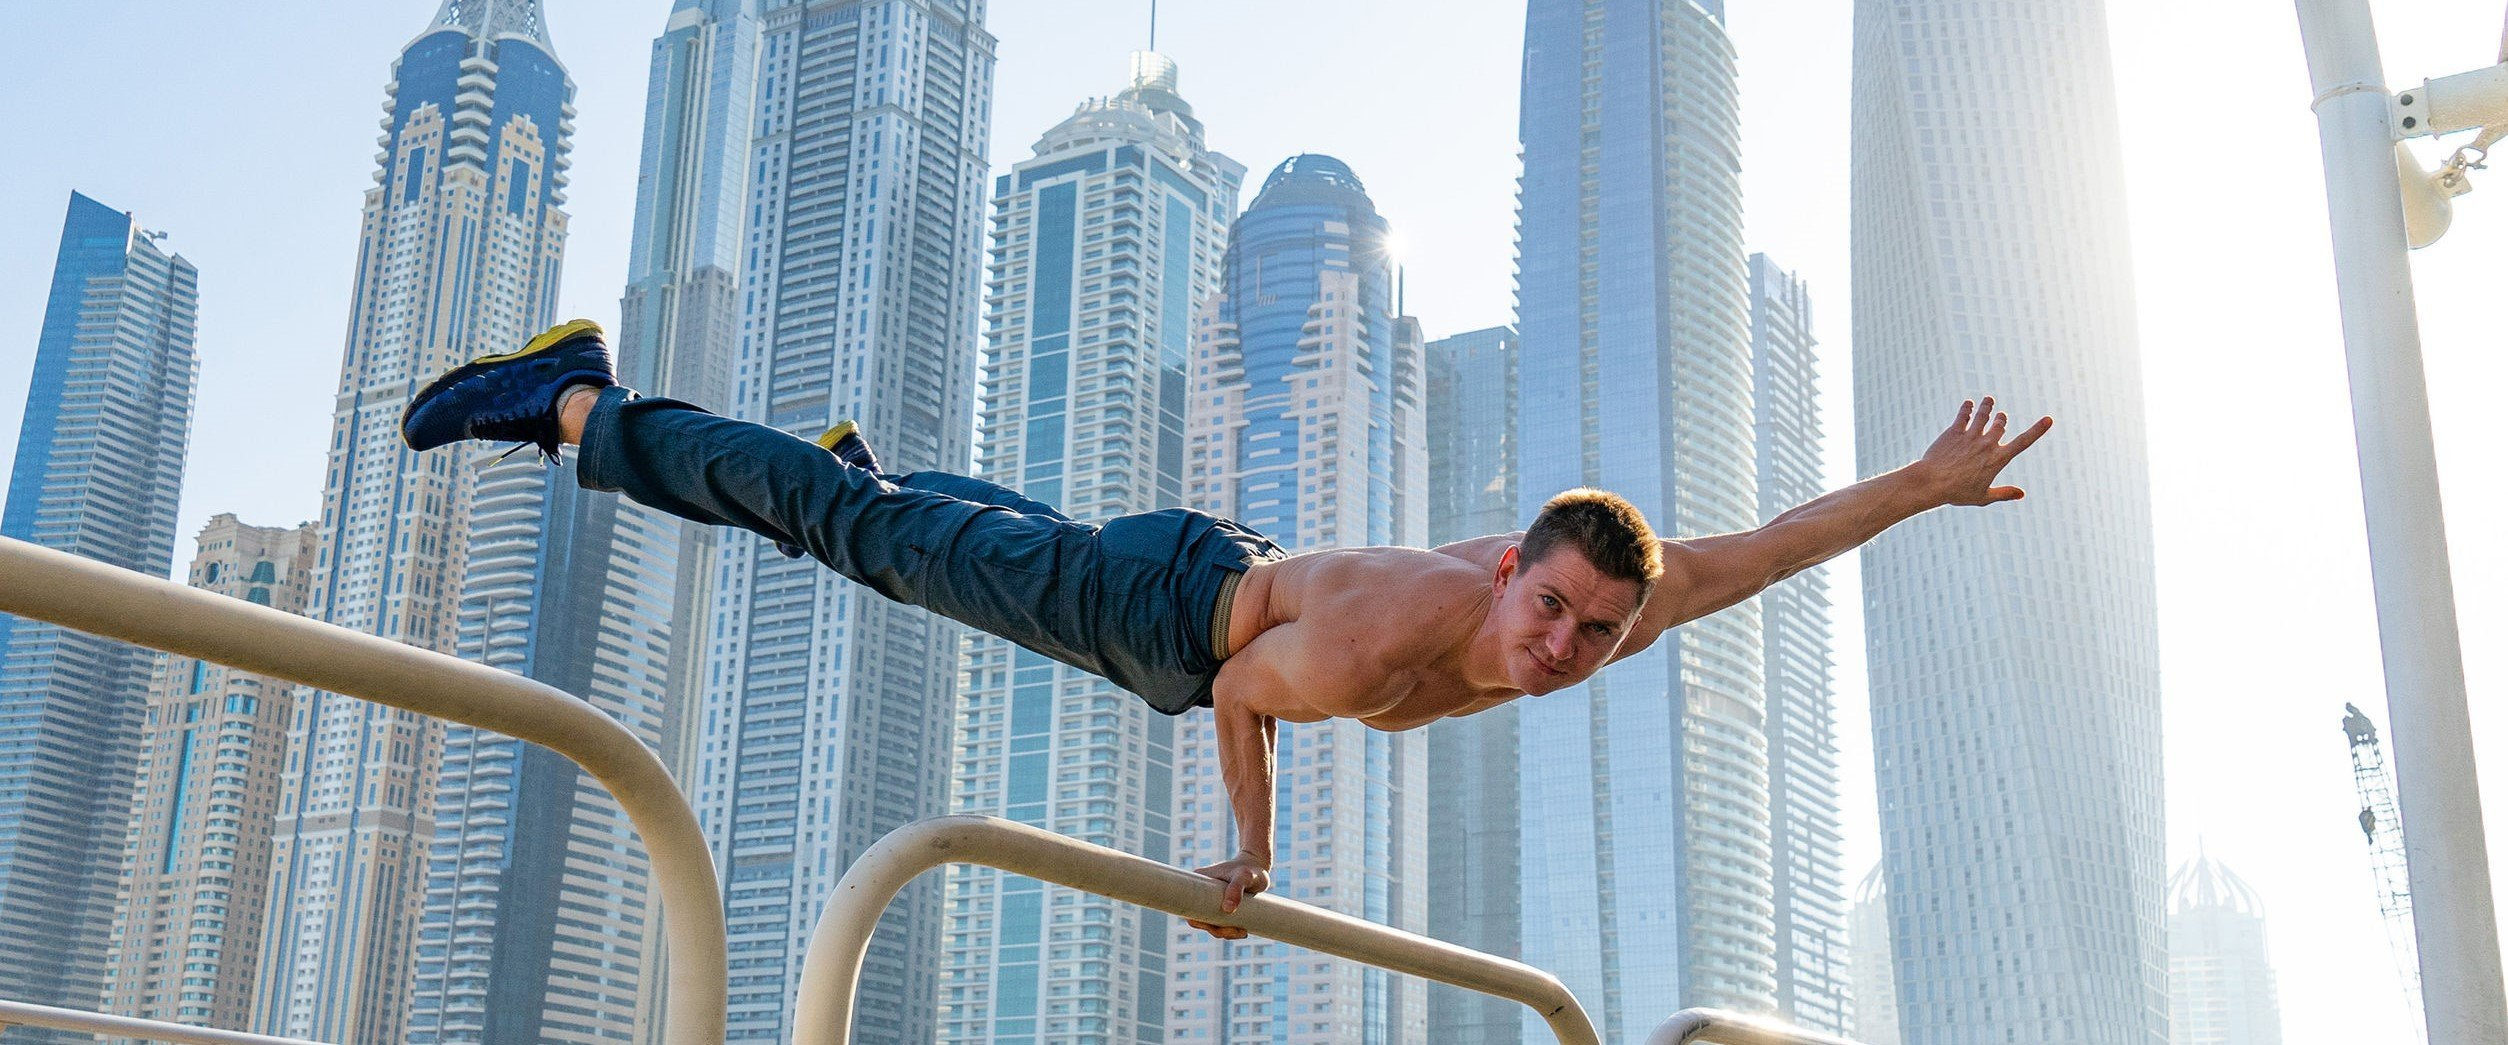 Muscular man doing workout on the street with cityscape of skyscrapers on background in Dubai. Concept of healthy lifestyle and modern